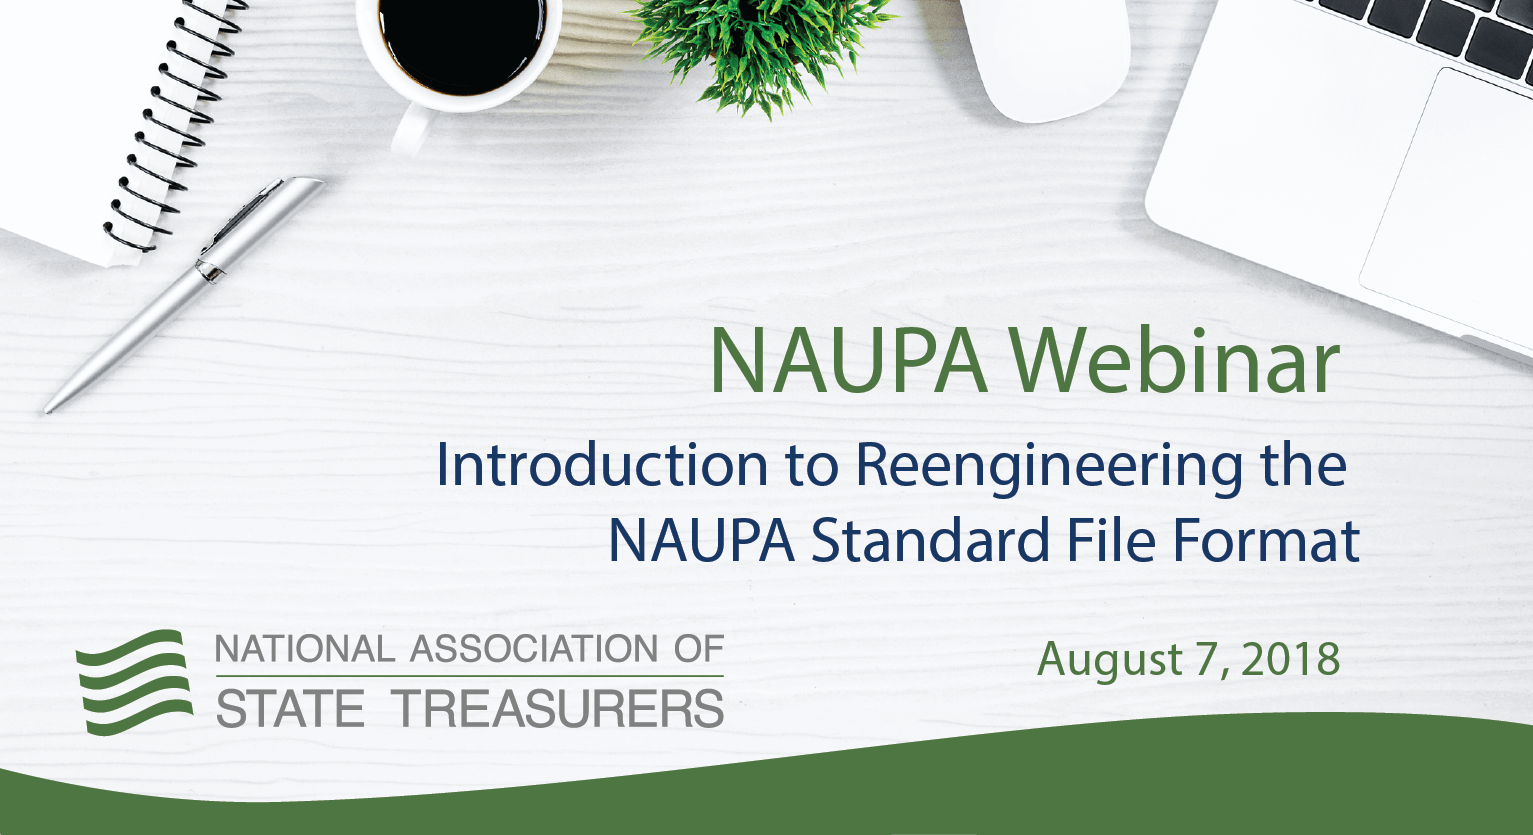 Introduction to Reengineering the NAUPA Standard File Format